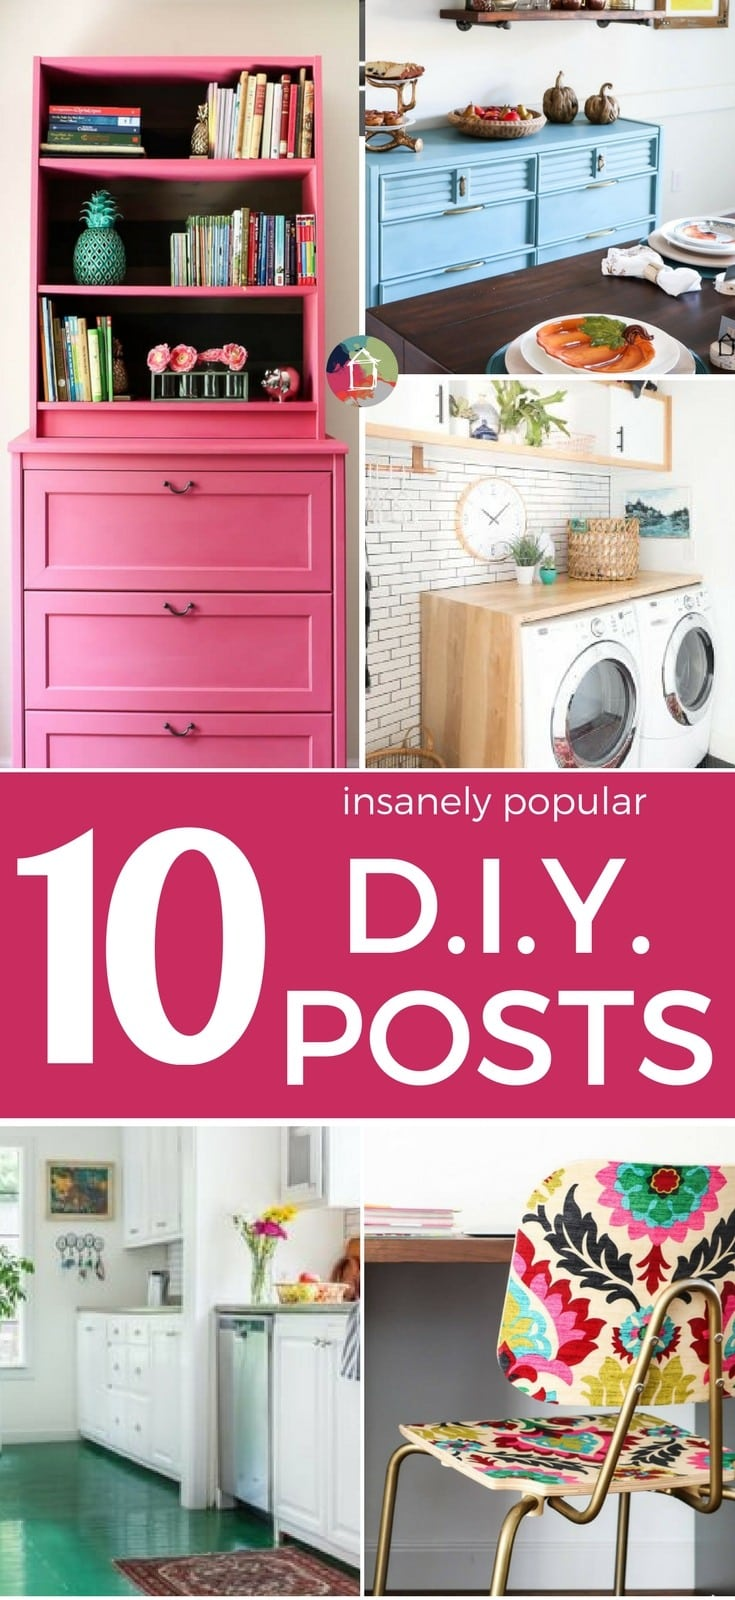 These top 10 most popular posts of 2017 include many DIY projects and more! There is something here for everyone to enjoy.